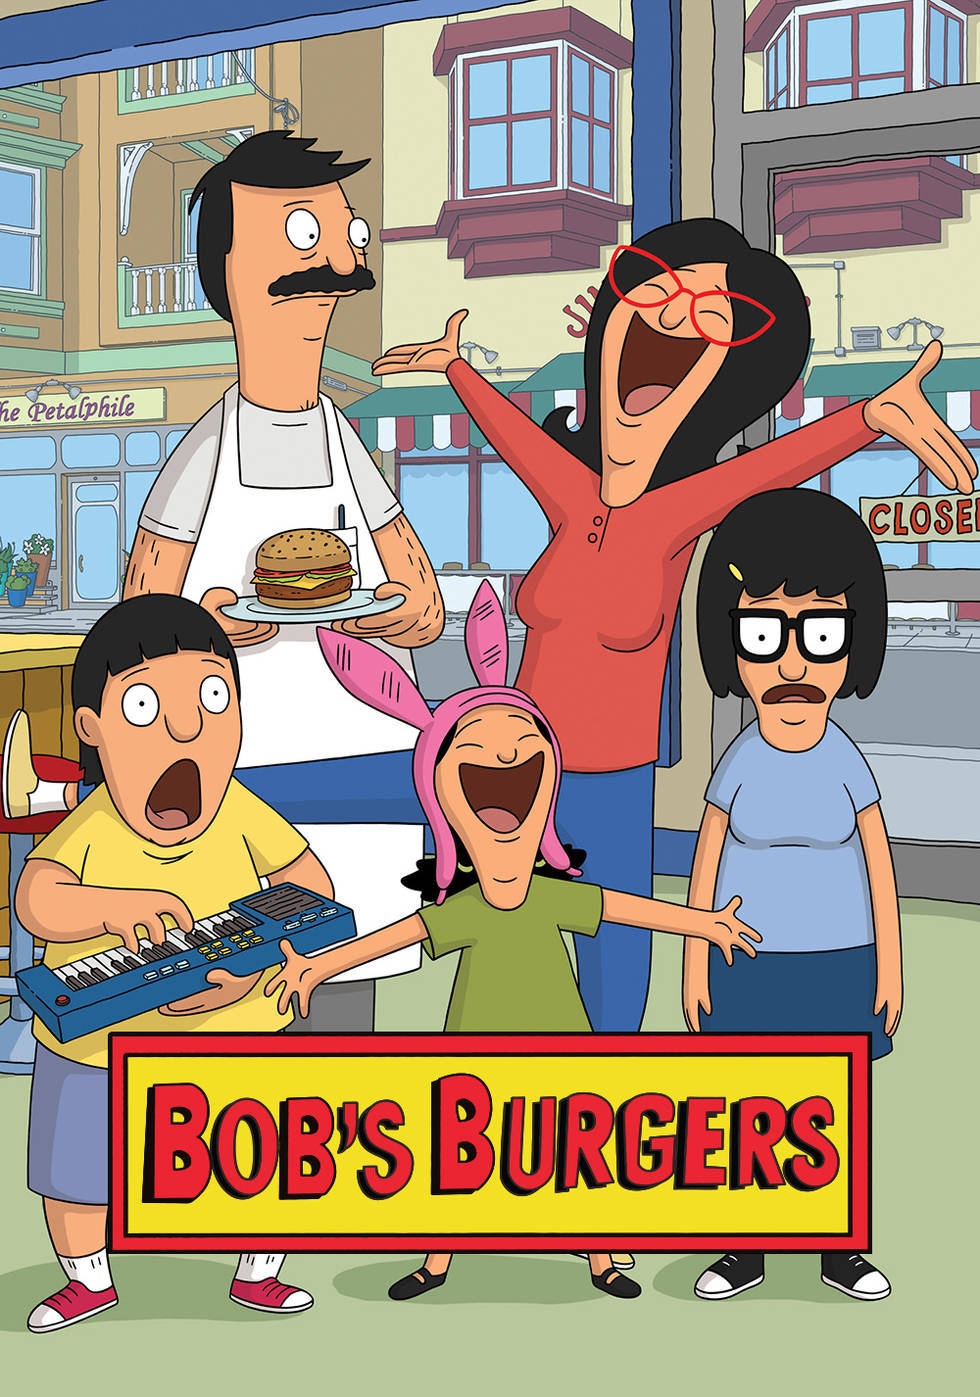 Bob's Burgers Season 8 Full Episodes 123movies